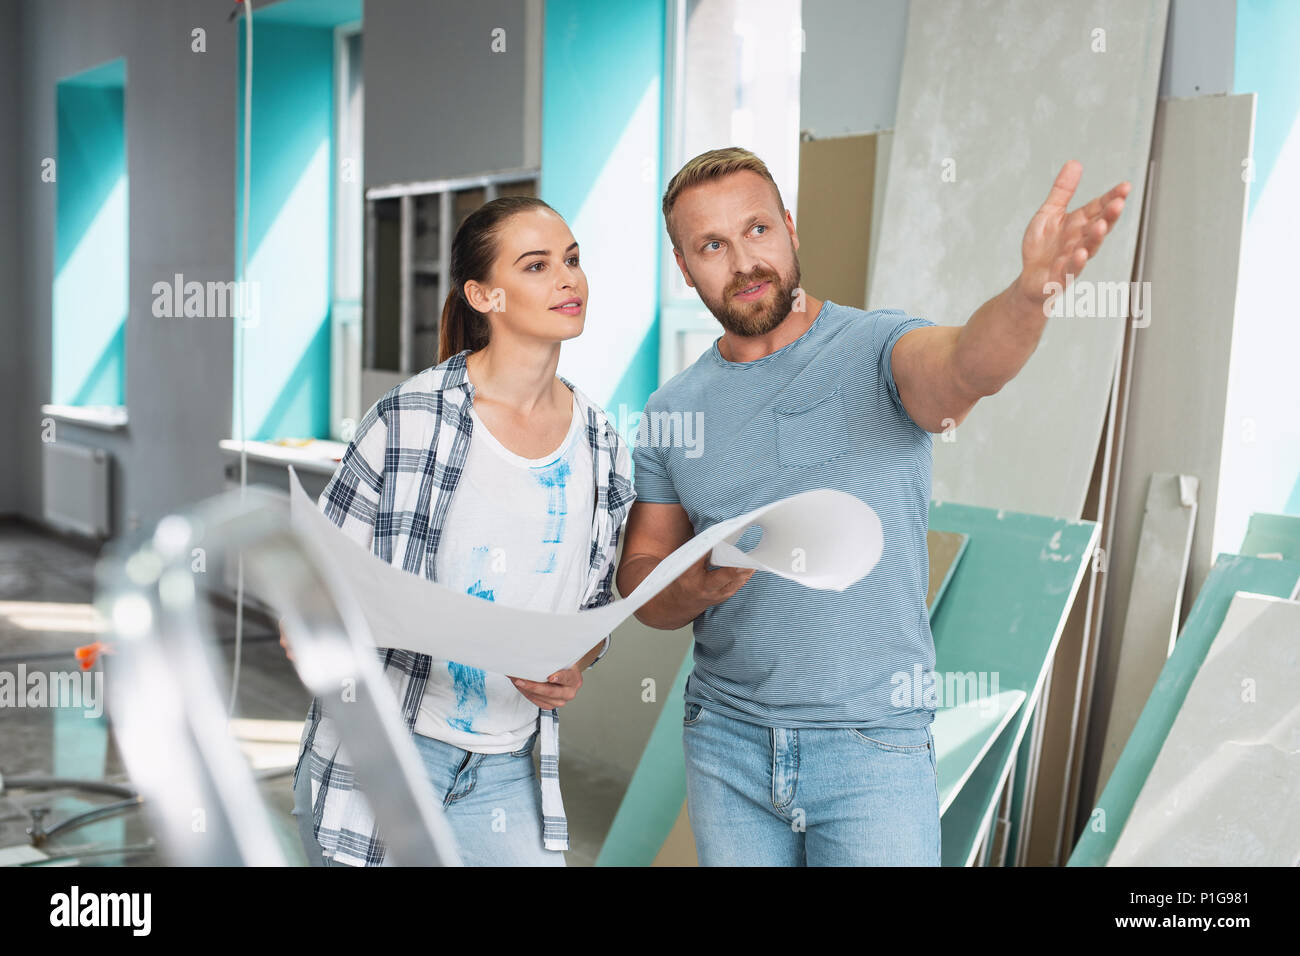 Serious man telling his preferences in renovations - Stock Image